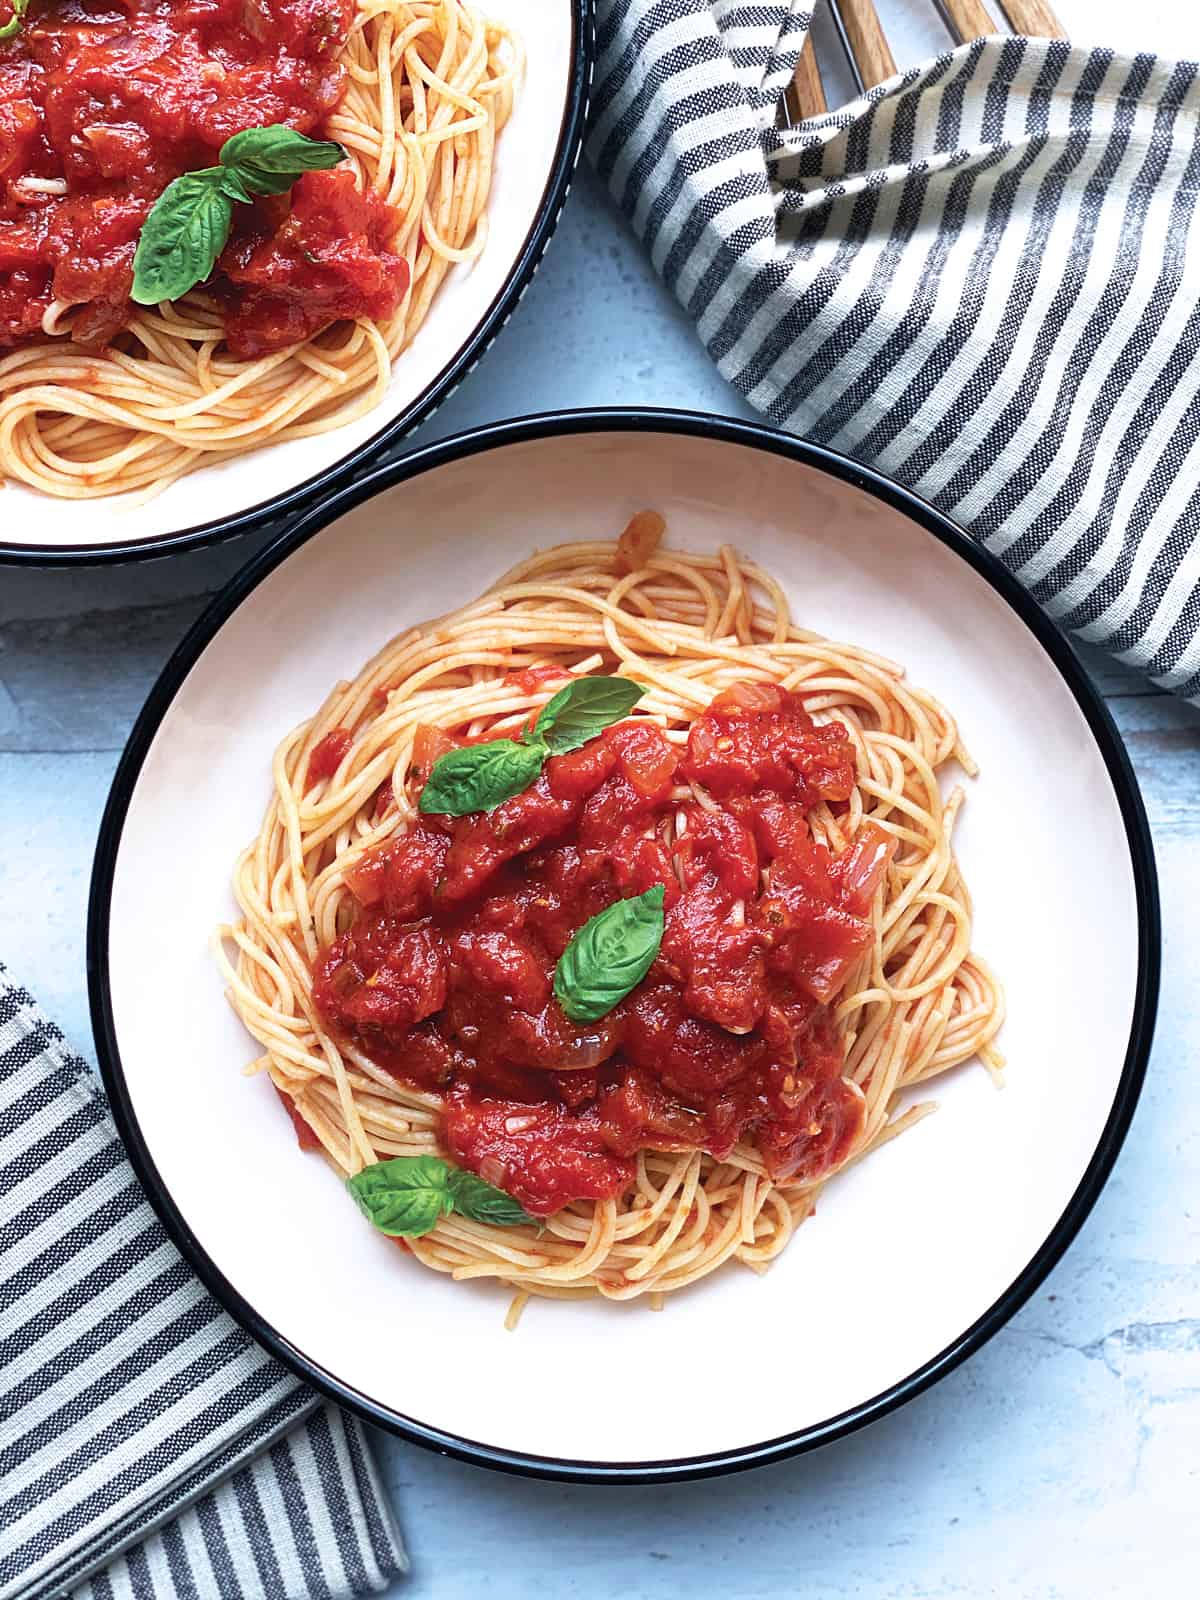 Two plates with spaghetti and greek tomato basil sauce.